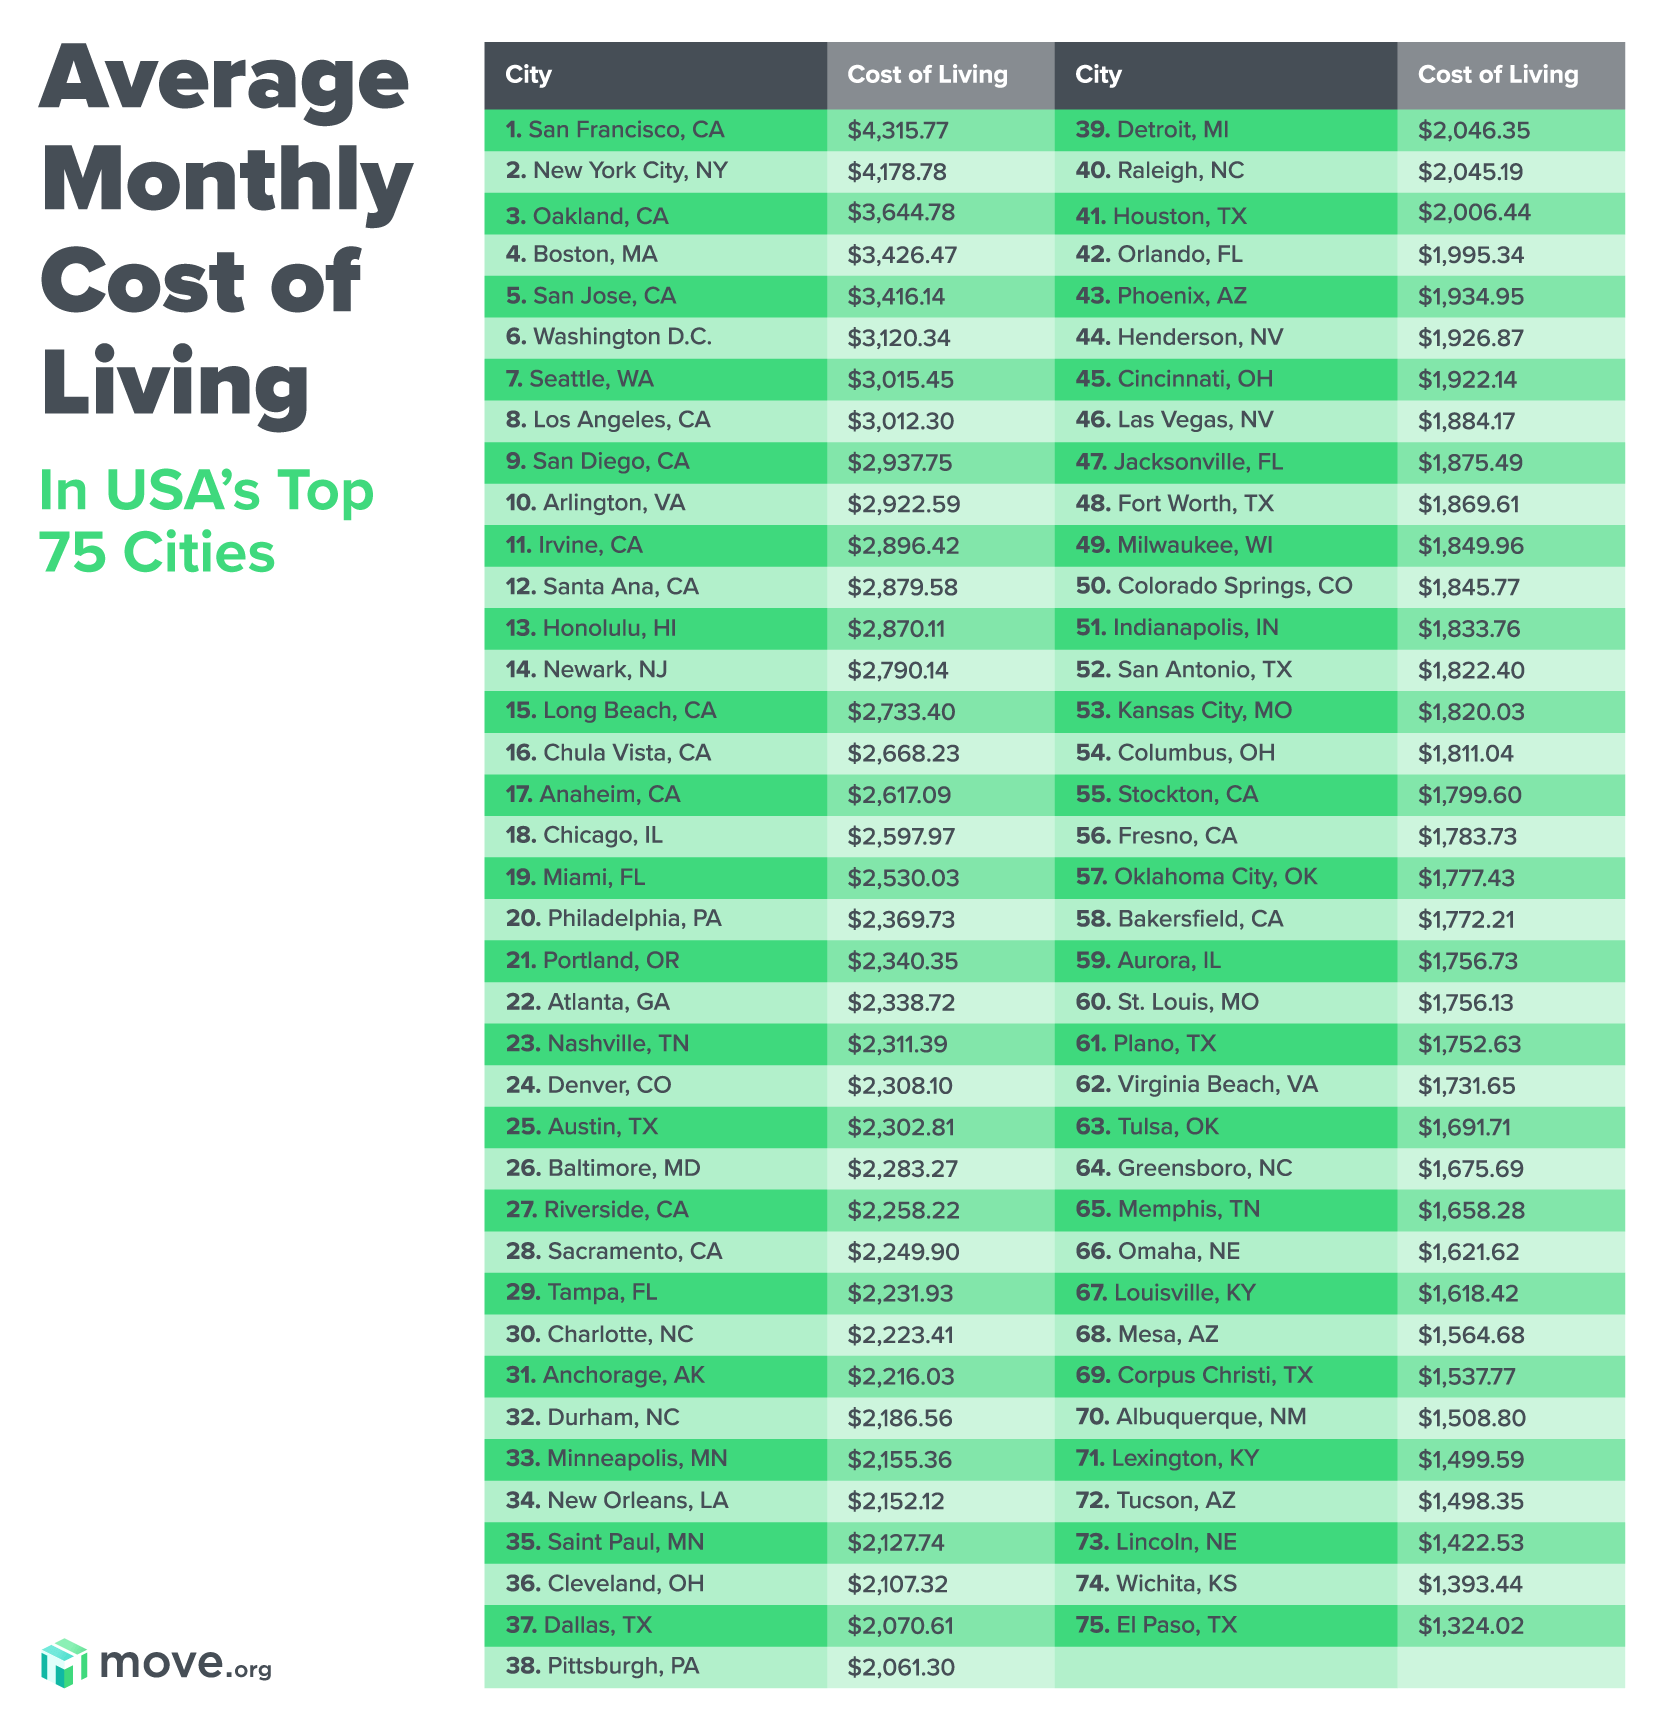 Cities ranked by cost of living